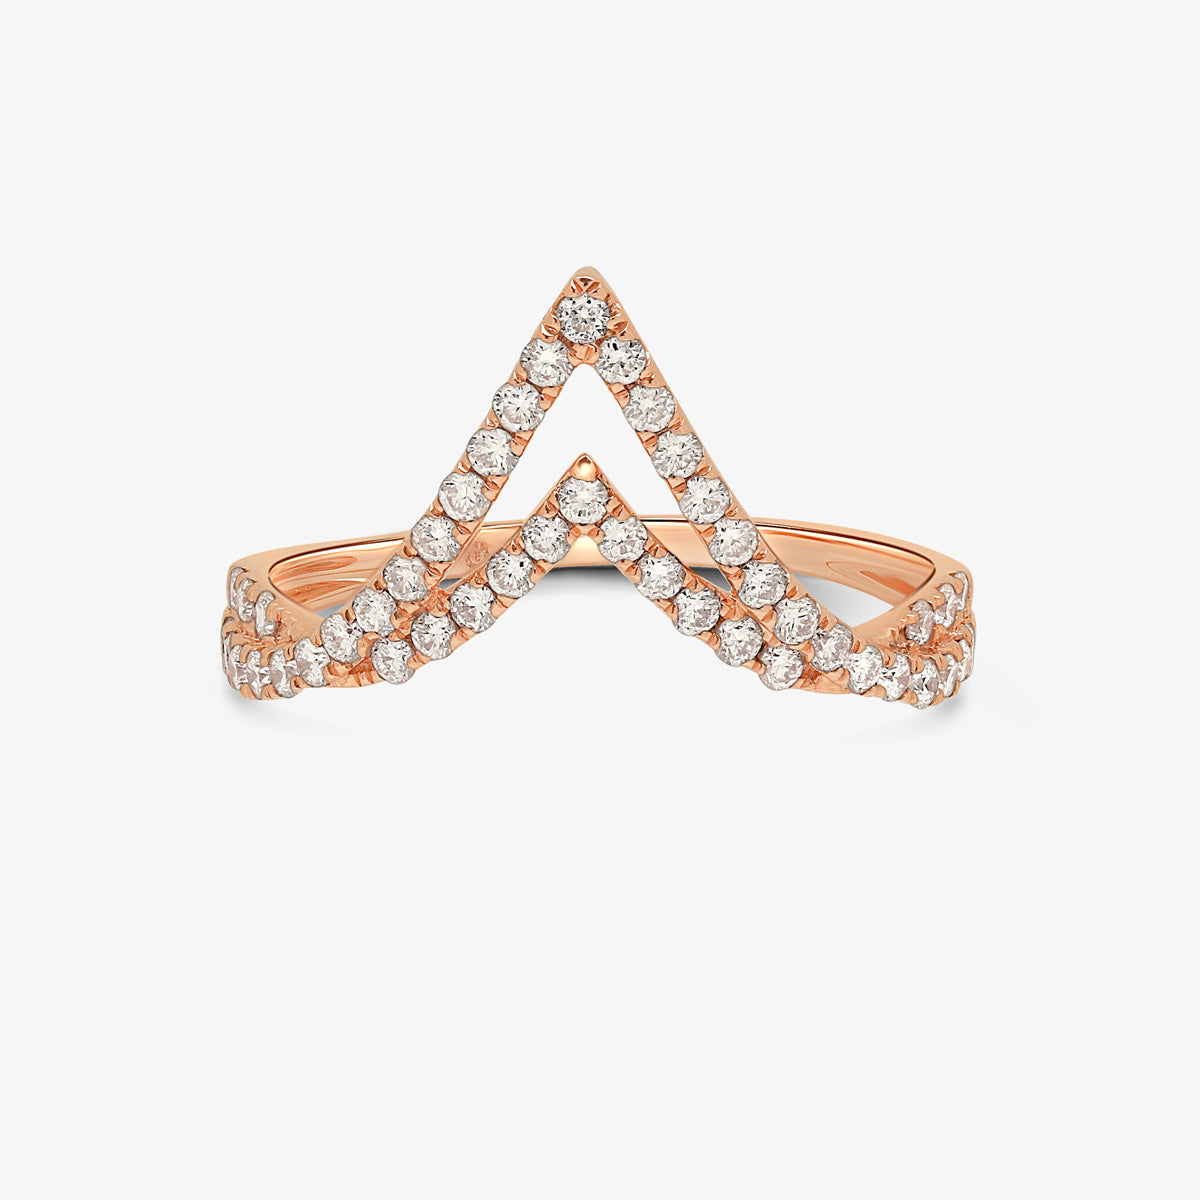 Solid Gold And Diamond Statement Ring - estellacollection